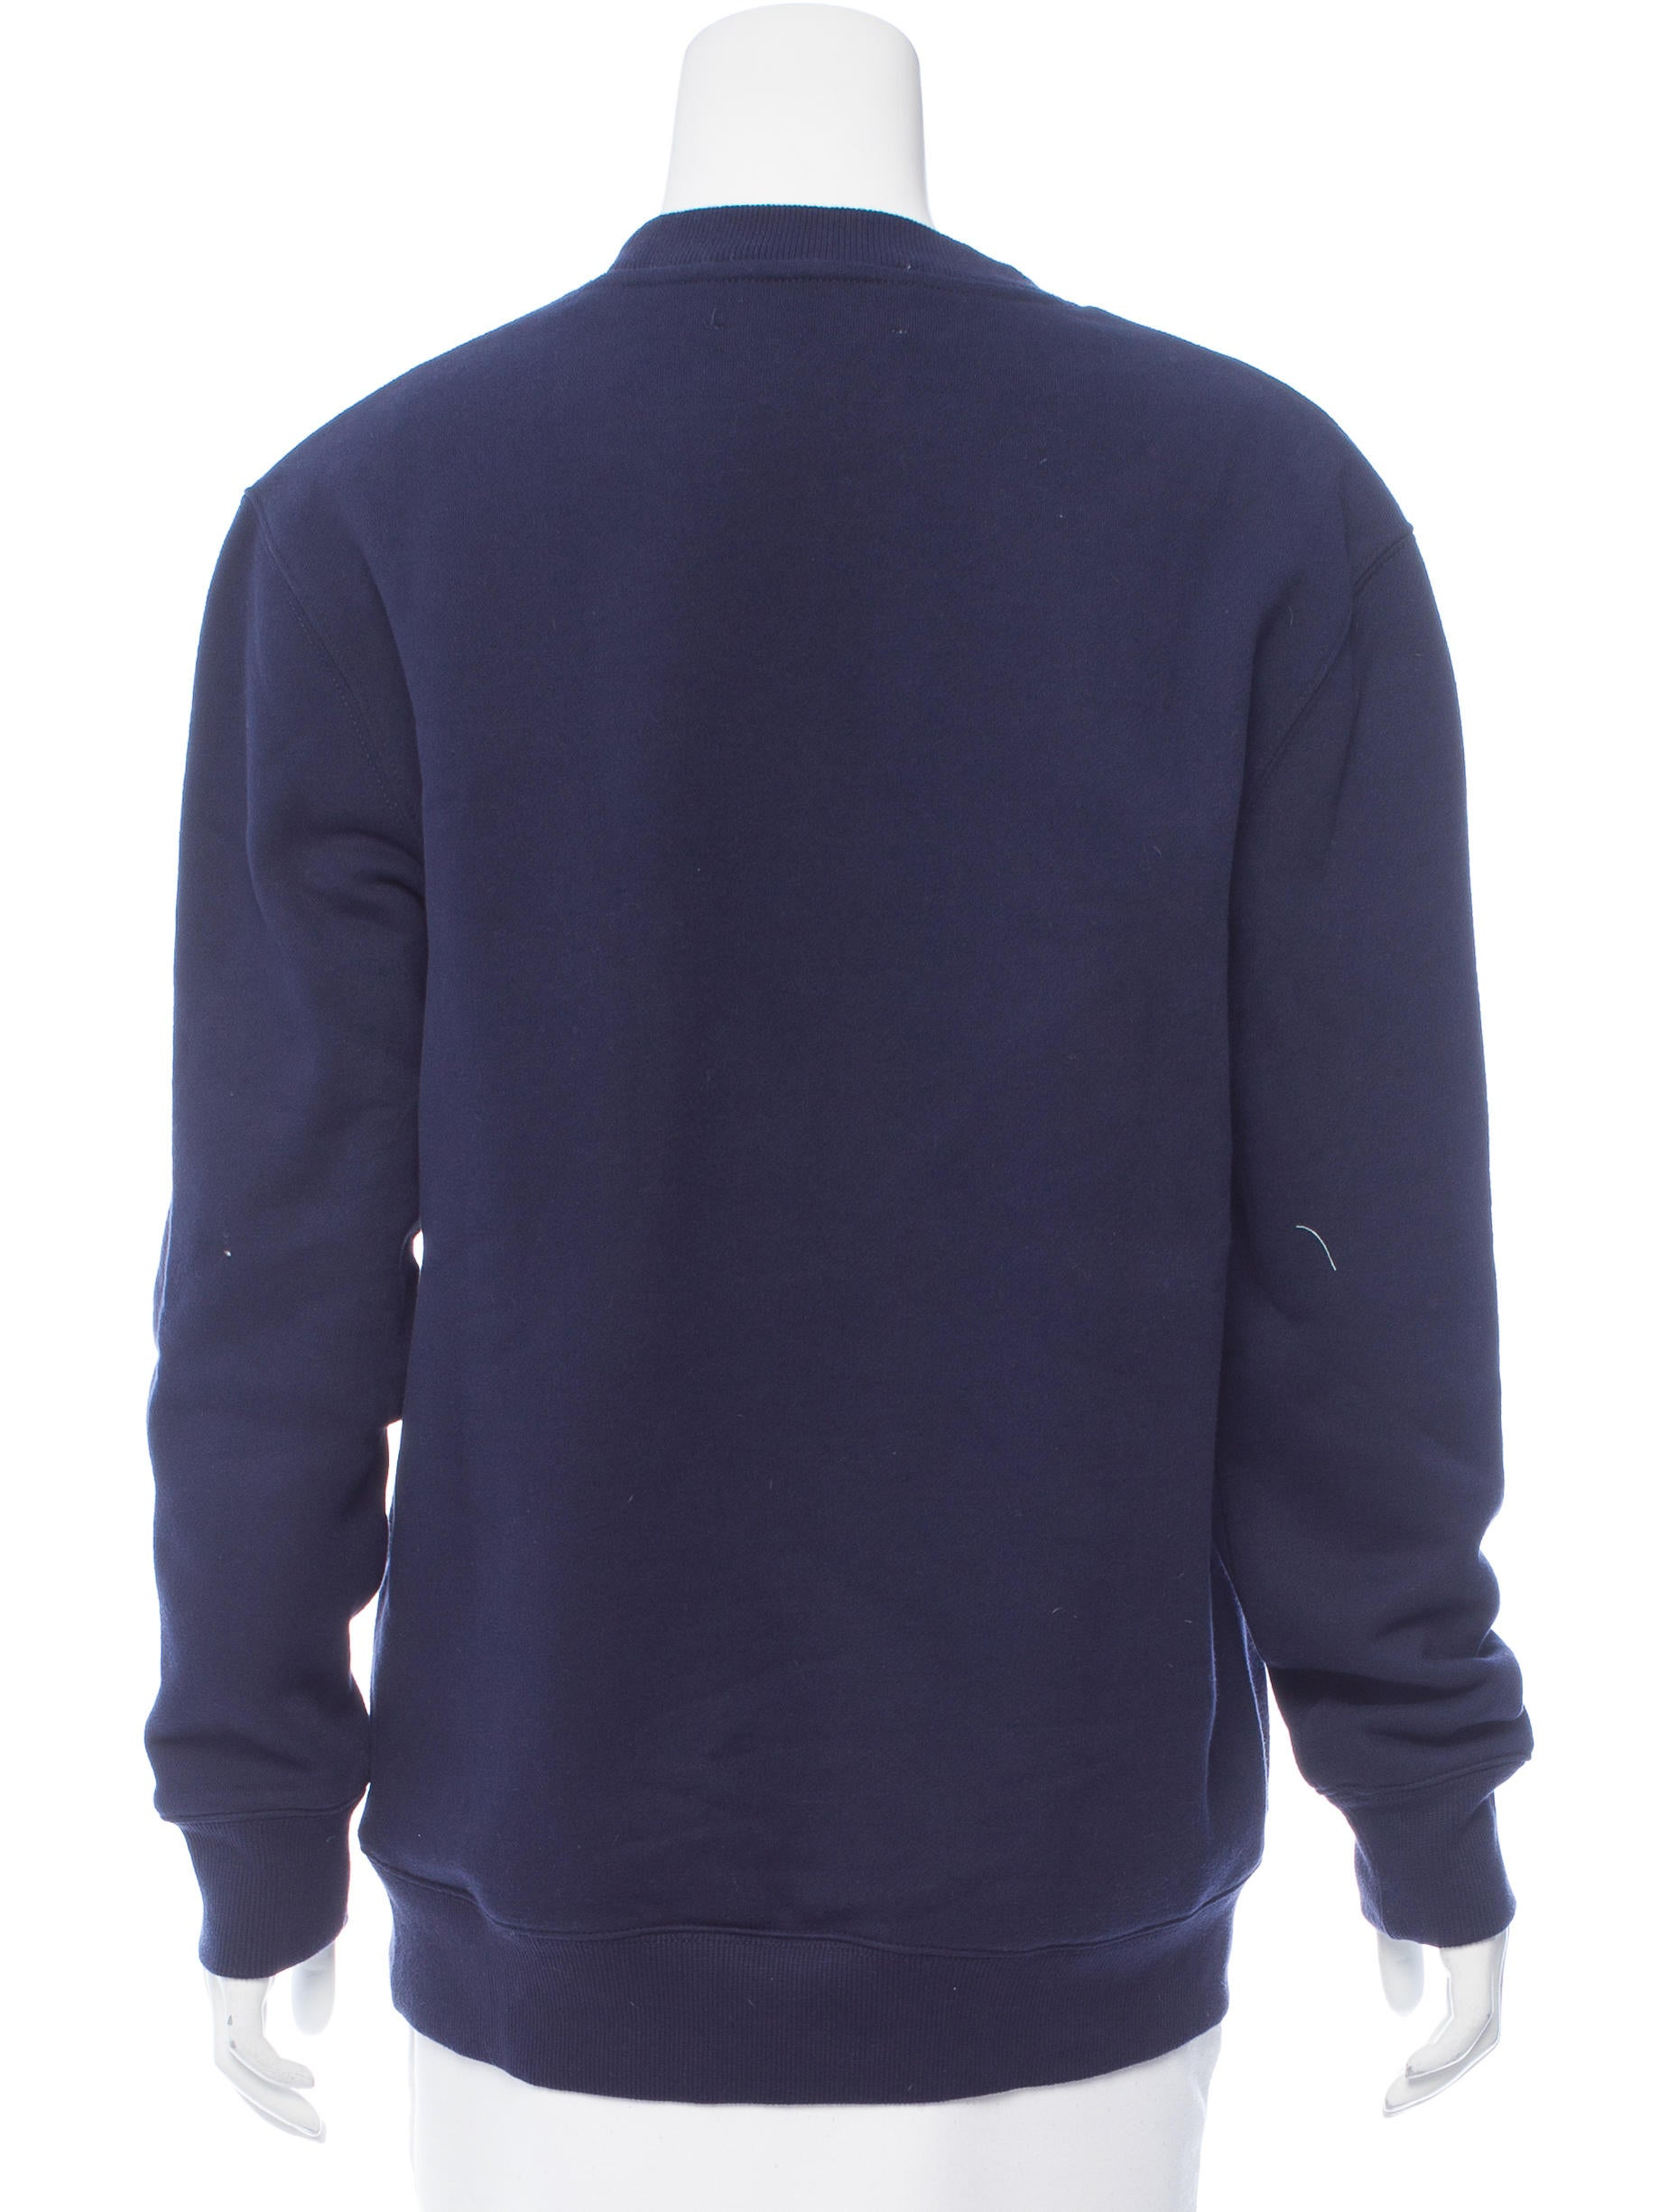 Absolute comfort and casual style go hand in hand with crew neck sweatshirts. Made with a soft and comfortable construction and a pullover design, women's crew neck sweatshirts come in a variety of fits and styles to accommodate your fashion needs. Crewneck sweatshirts are ideal for anytime of year.